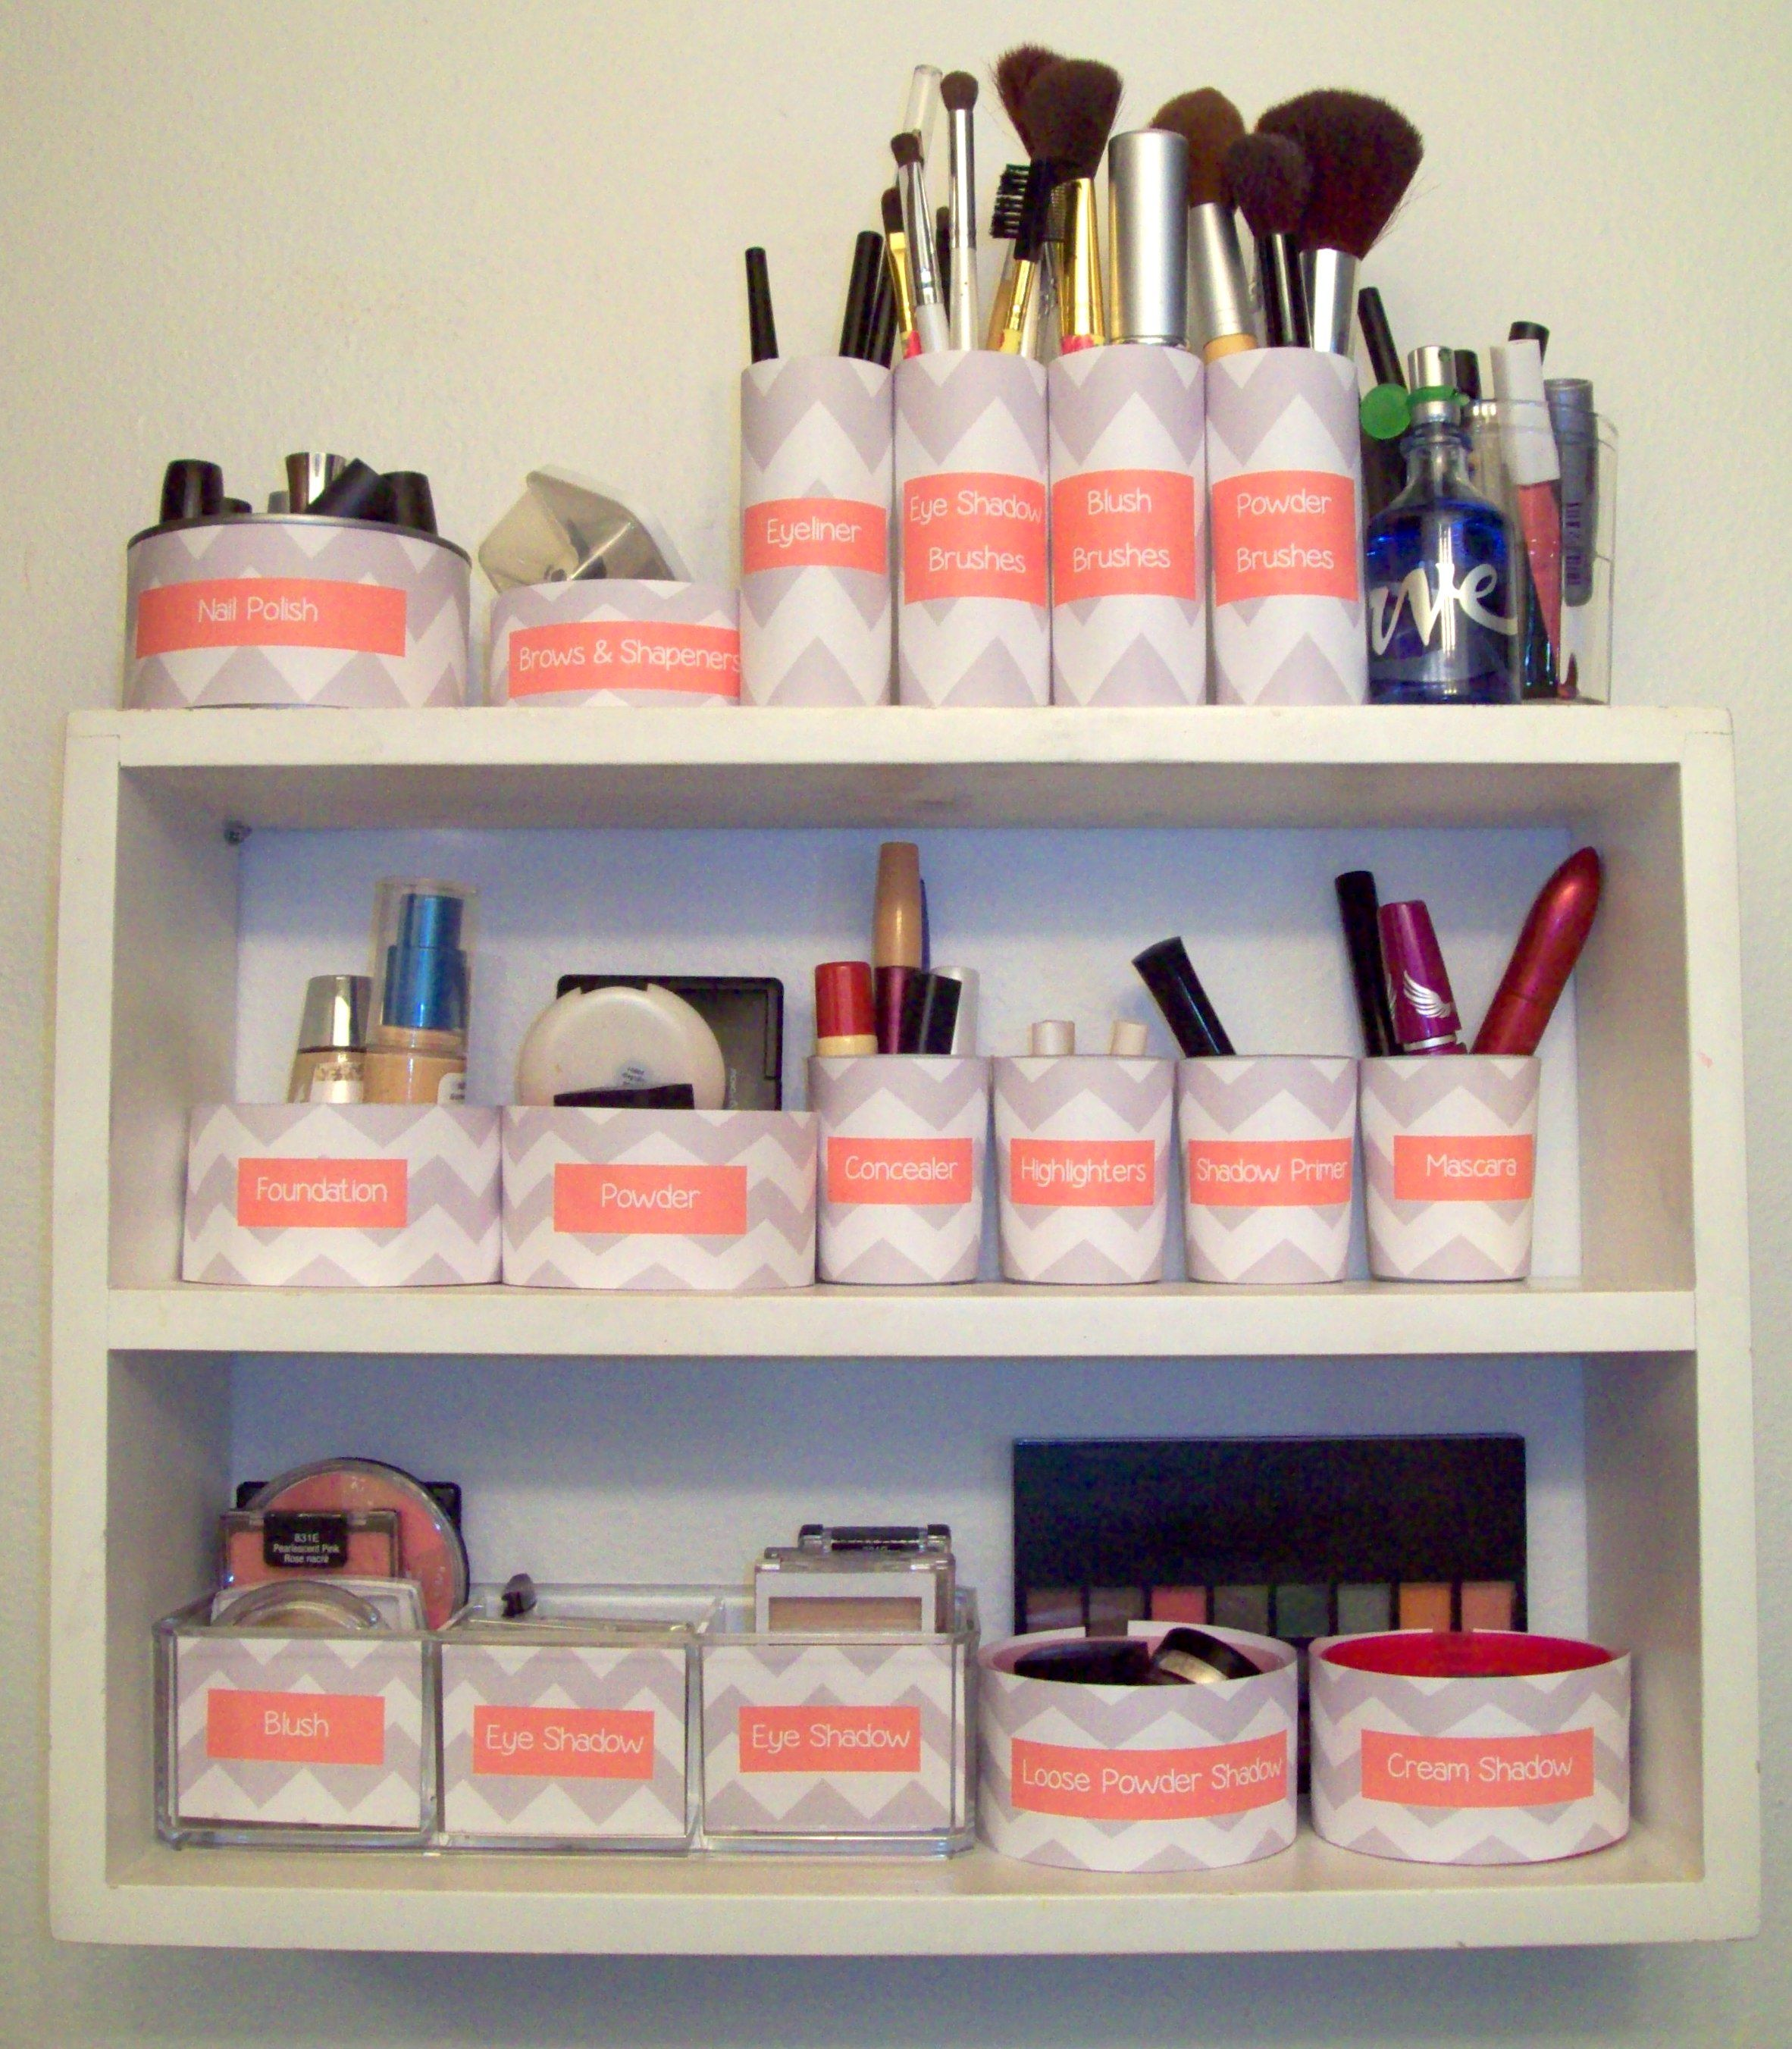 Beauty Shelf Makeup Organization Shelf This Is Just A Photo But It